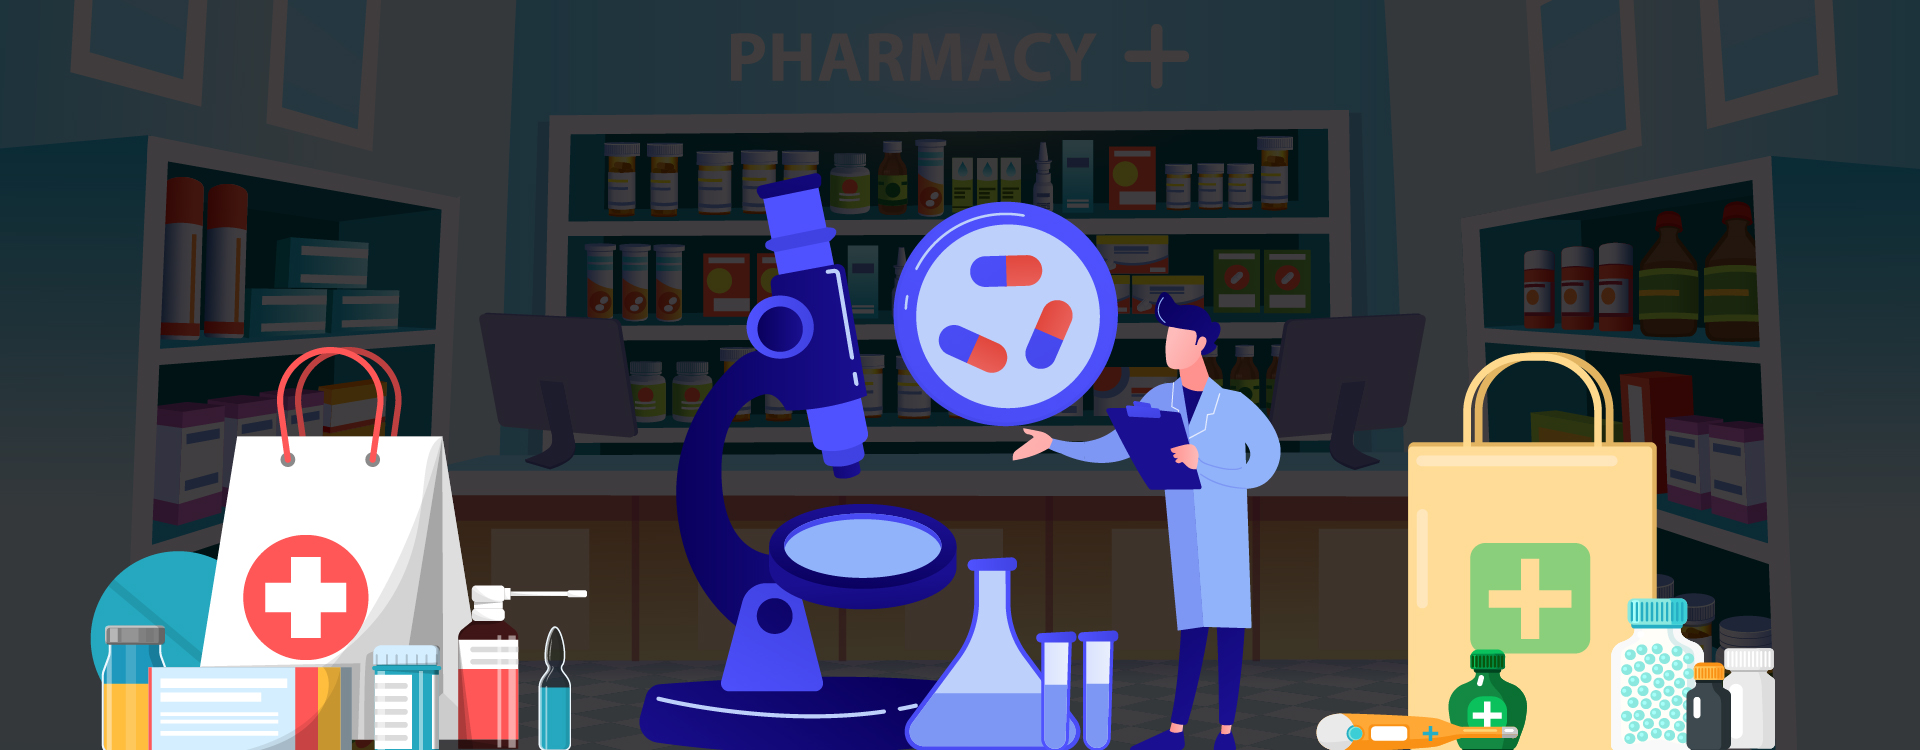 Innovation in Pharma Industry: Will 2021 be any different?